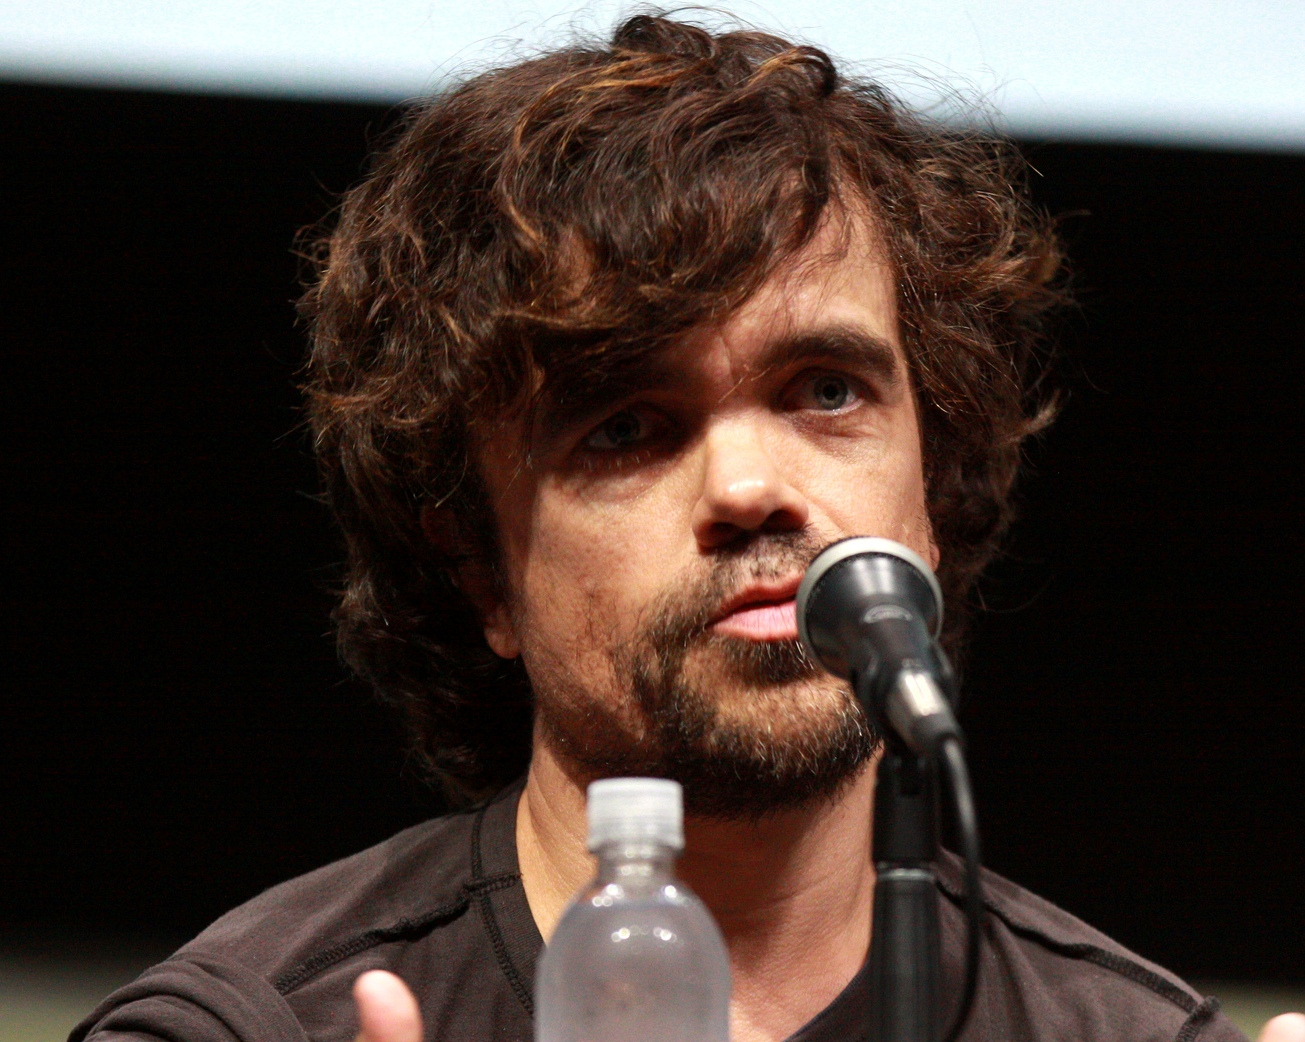 Peter Dinklage at 2013 San Diego Comic Con